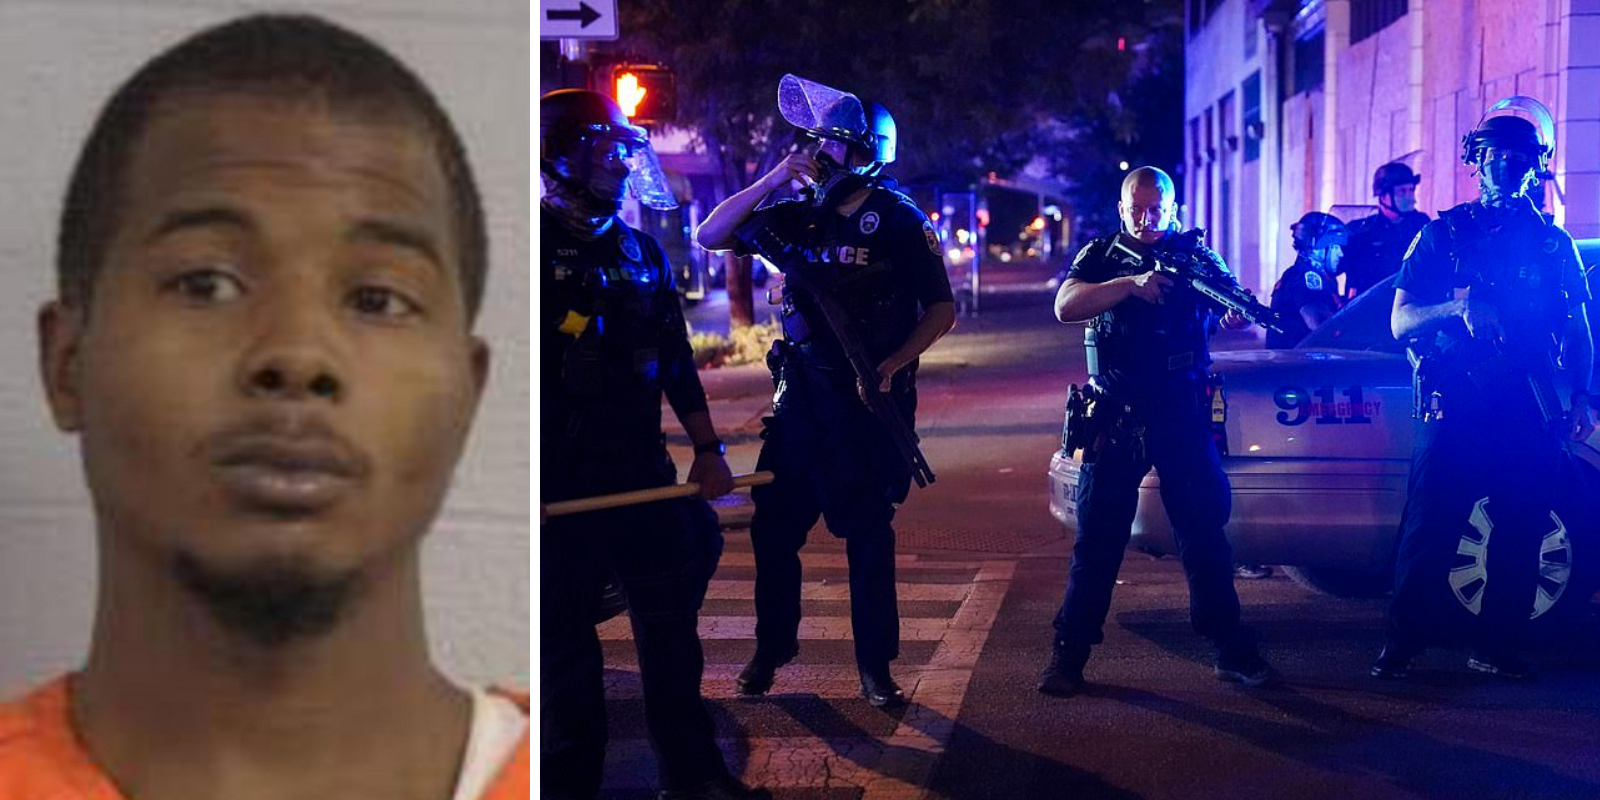 Man arrested for the shooting of two Louisville police officers